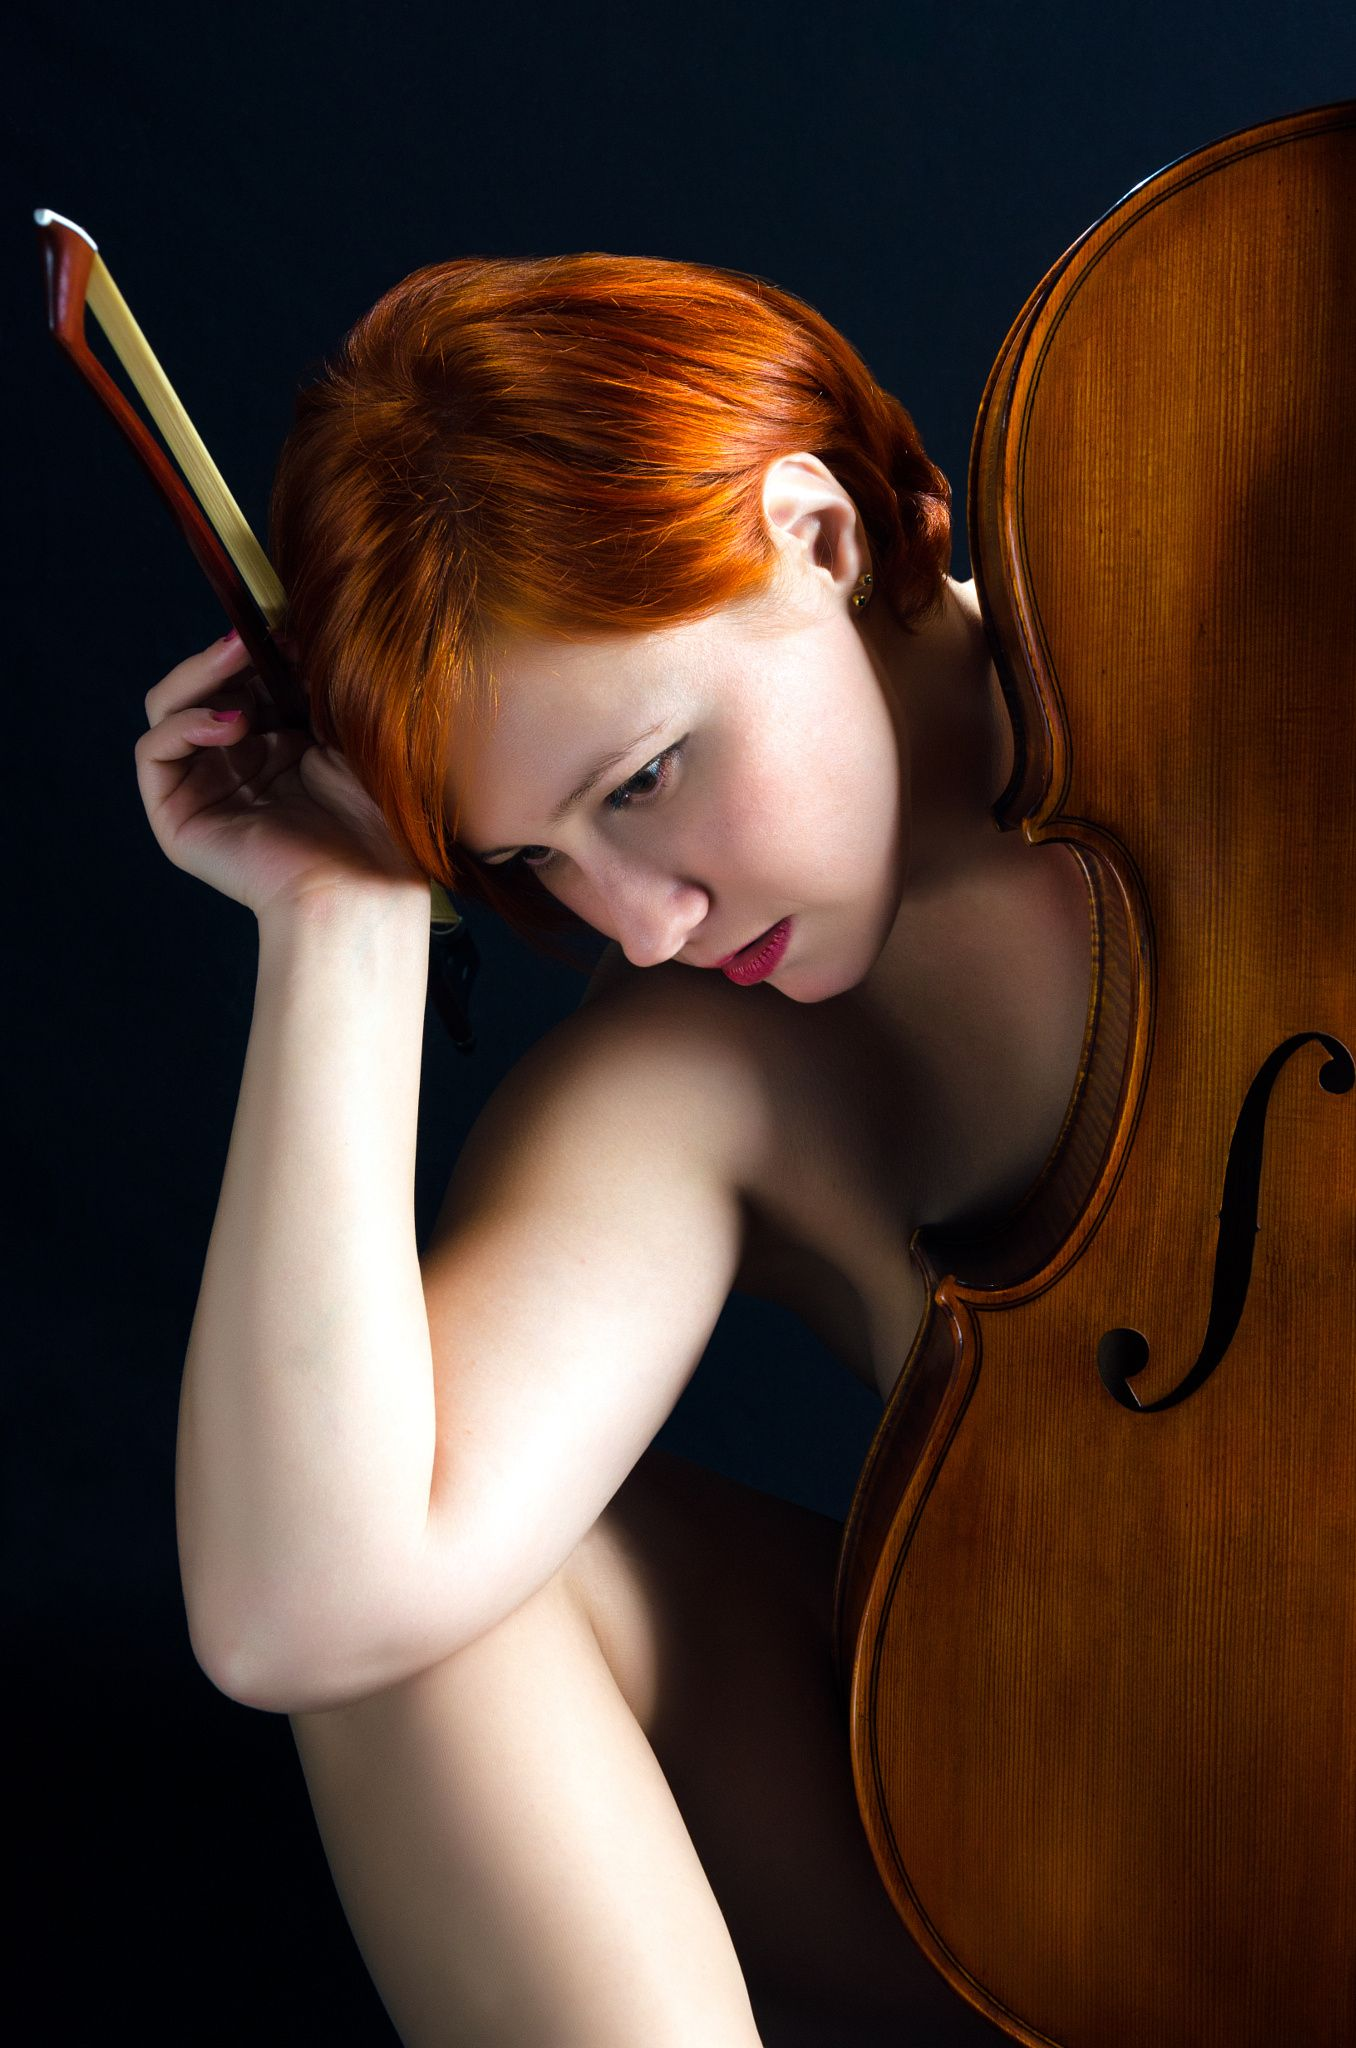 Chamber Dreams - Young girl hiding her nudity behind a cello